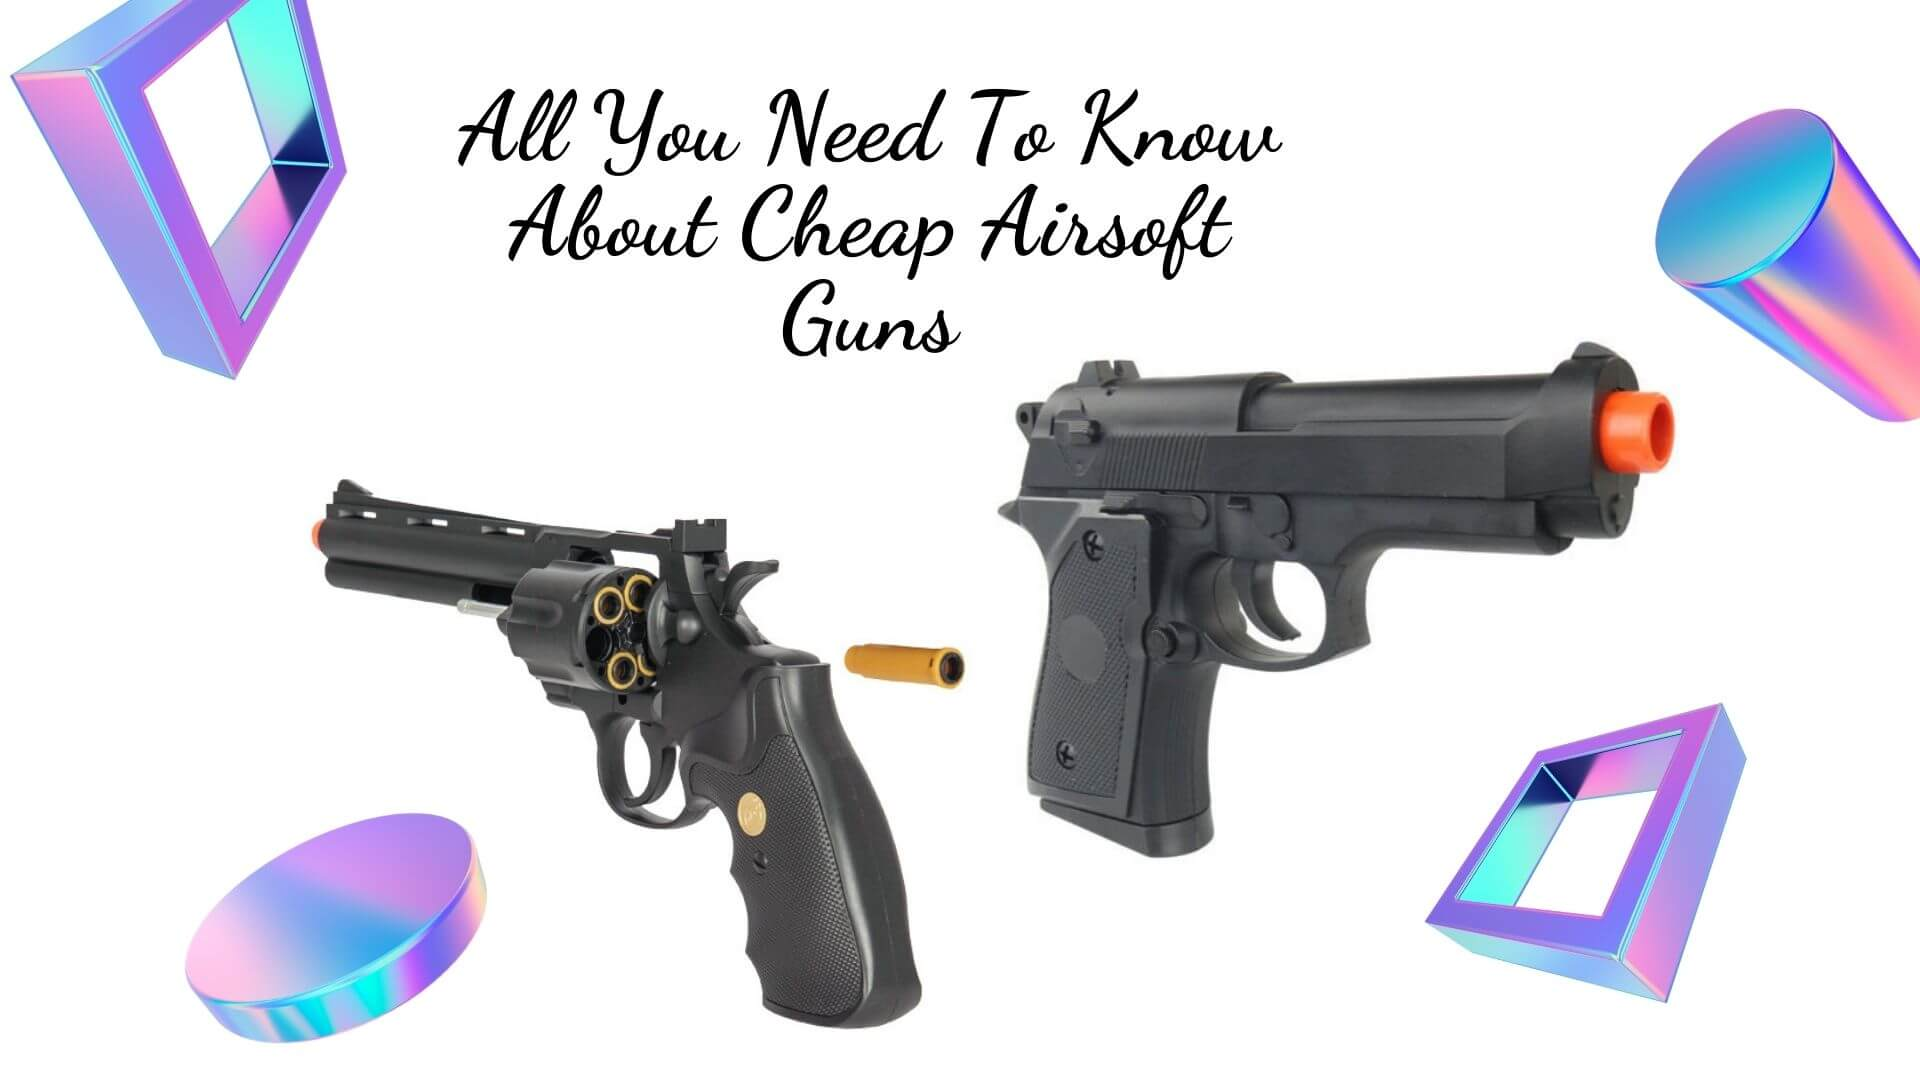 All You Need To Know About Cheap Airsoft Guns and Where to Buy them